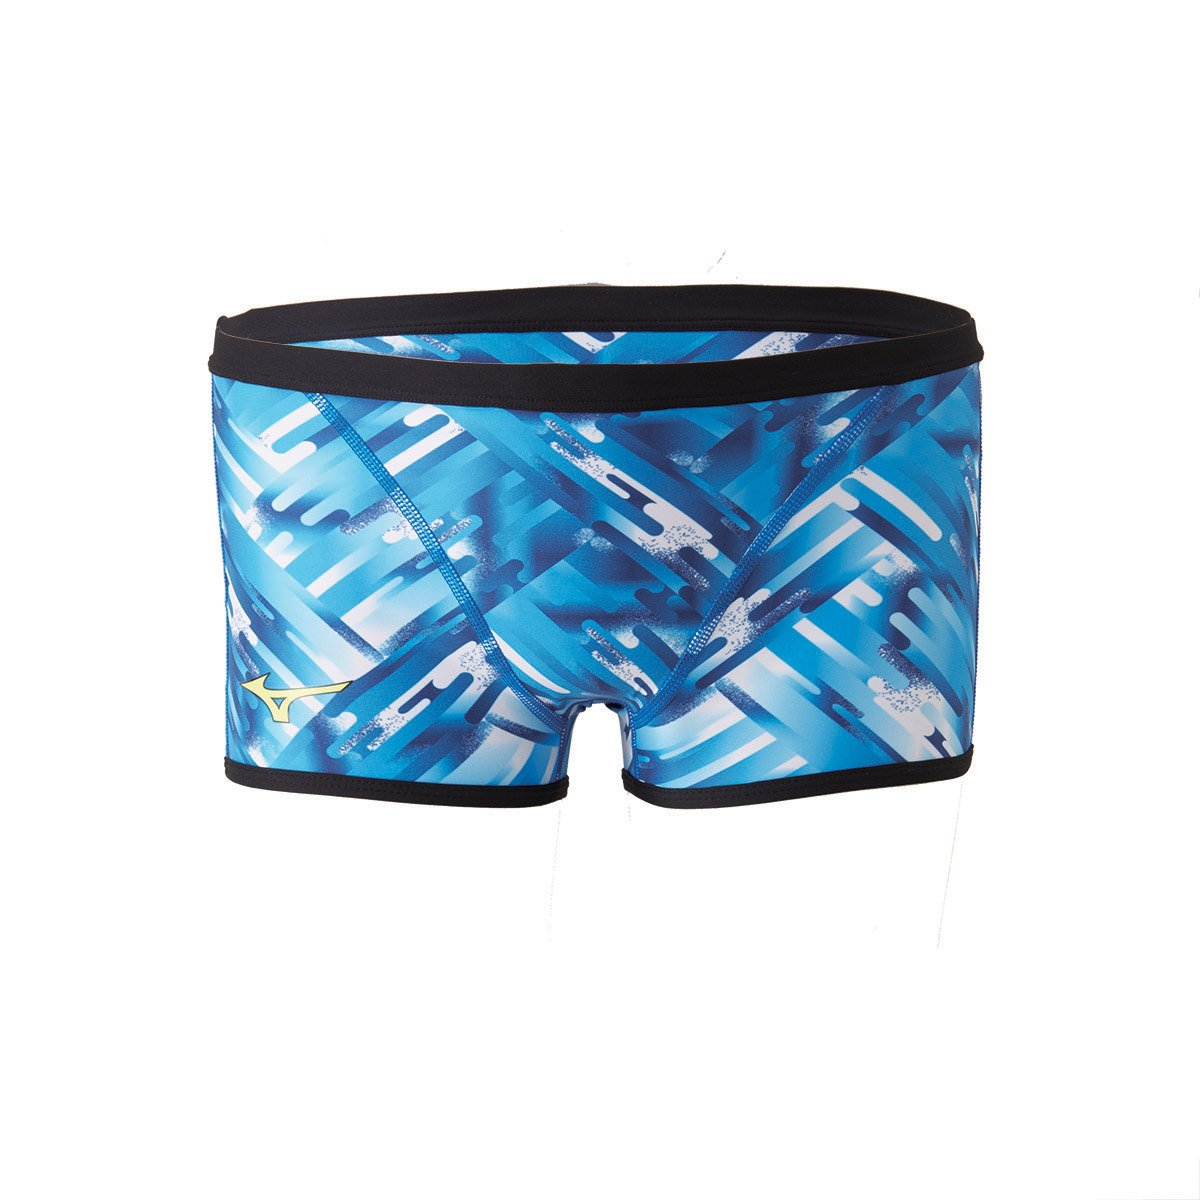 EXER SUITS Men - SWIMWEAR FOR PRACTICE Blue